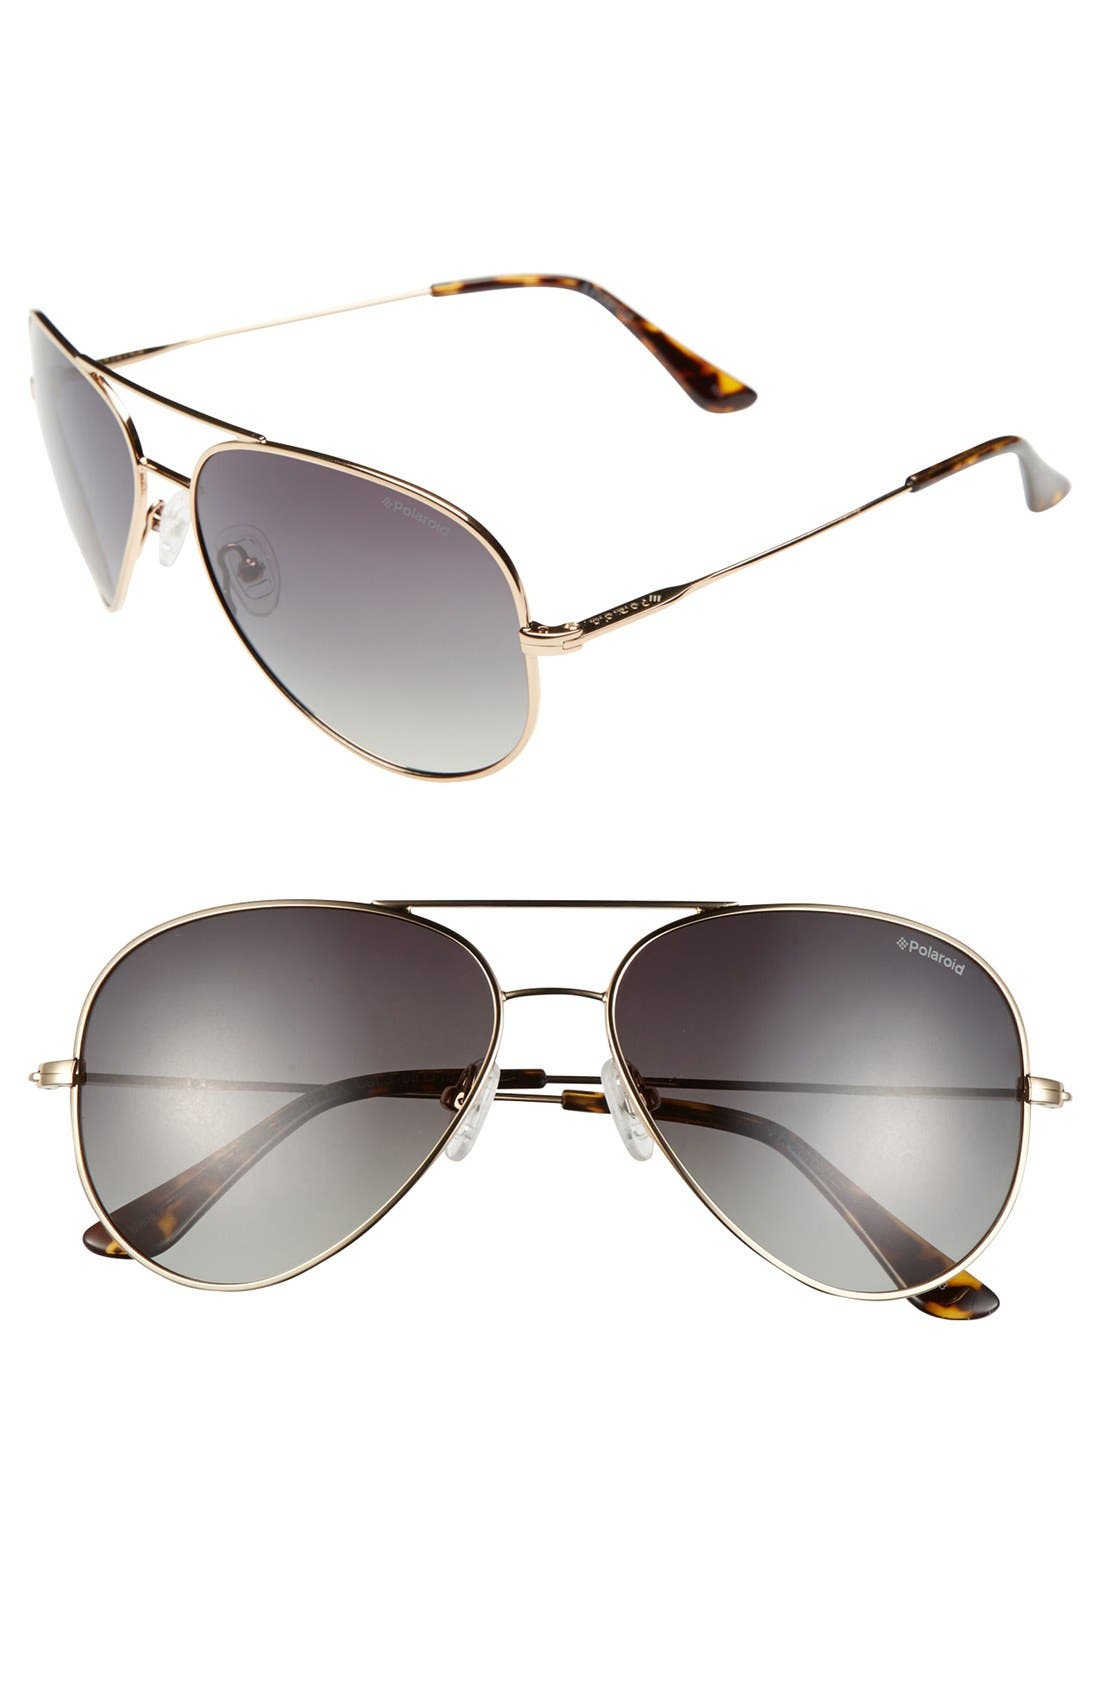 Main Image - Polaroid Eyewear 59mm Polarized Aviator Sunglasses